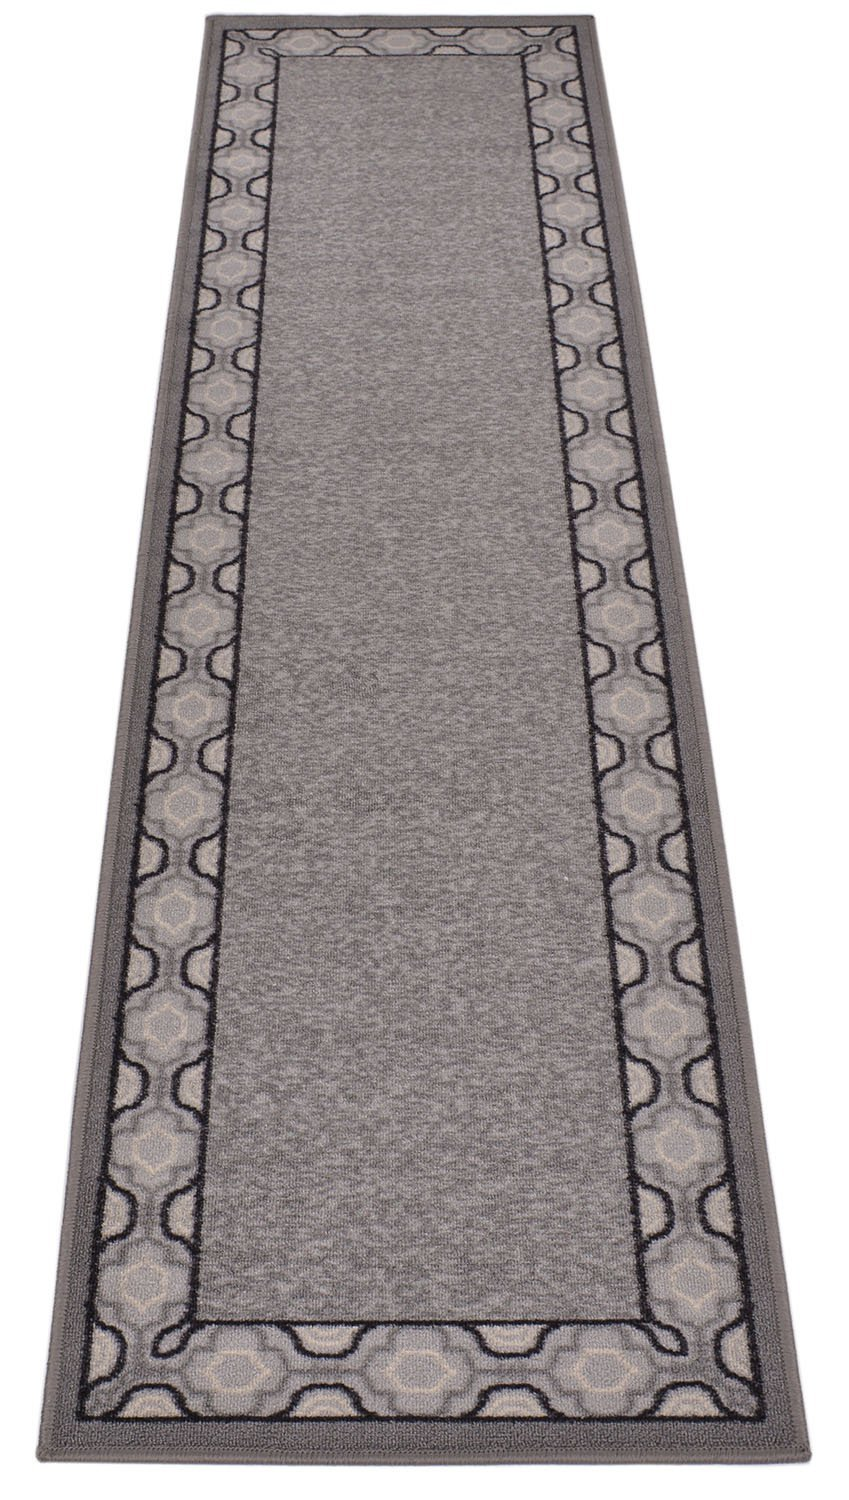 Rug Styles COMIN18JU080432 Beige, 20 x 59 20 x 59 Trellis Border Moroccan Design Printed Slip Resistant Rubber Back Latex Runner Rug and Area Rugs More Color Options Available